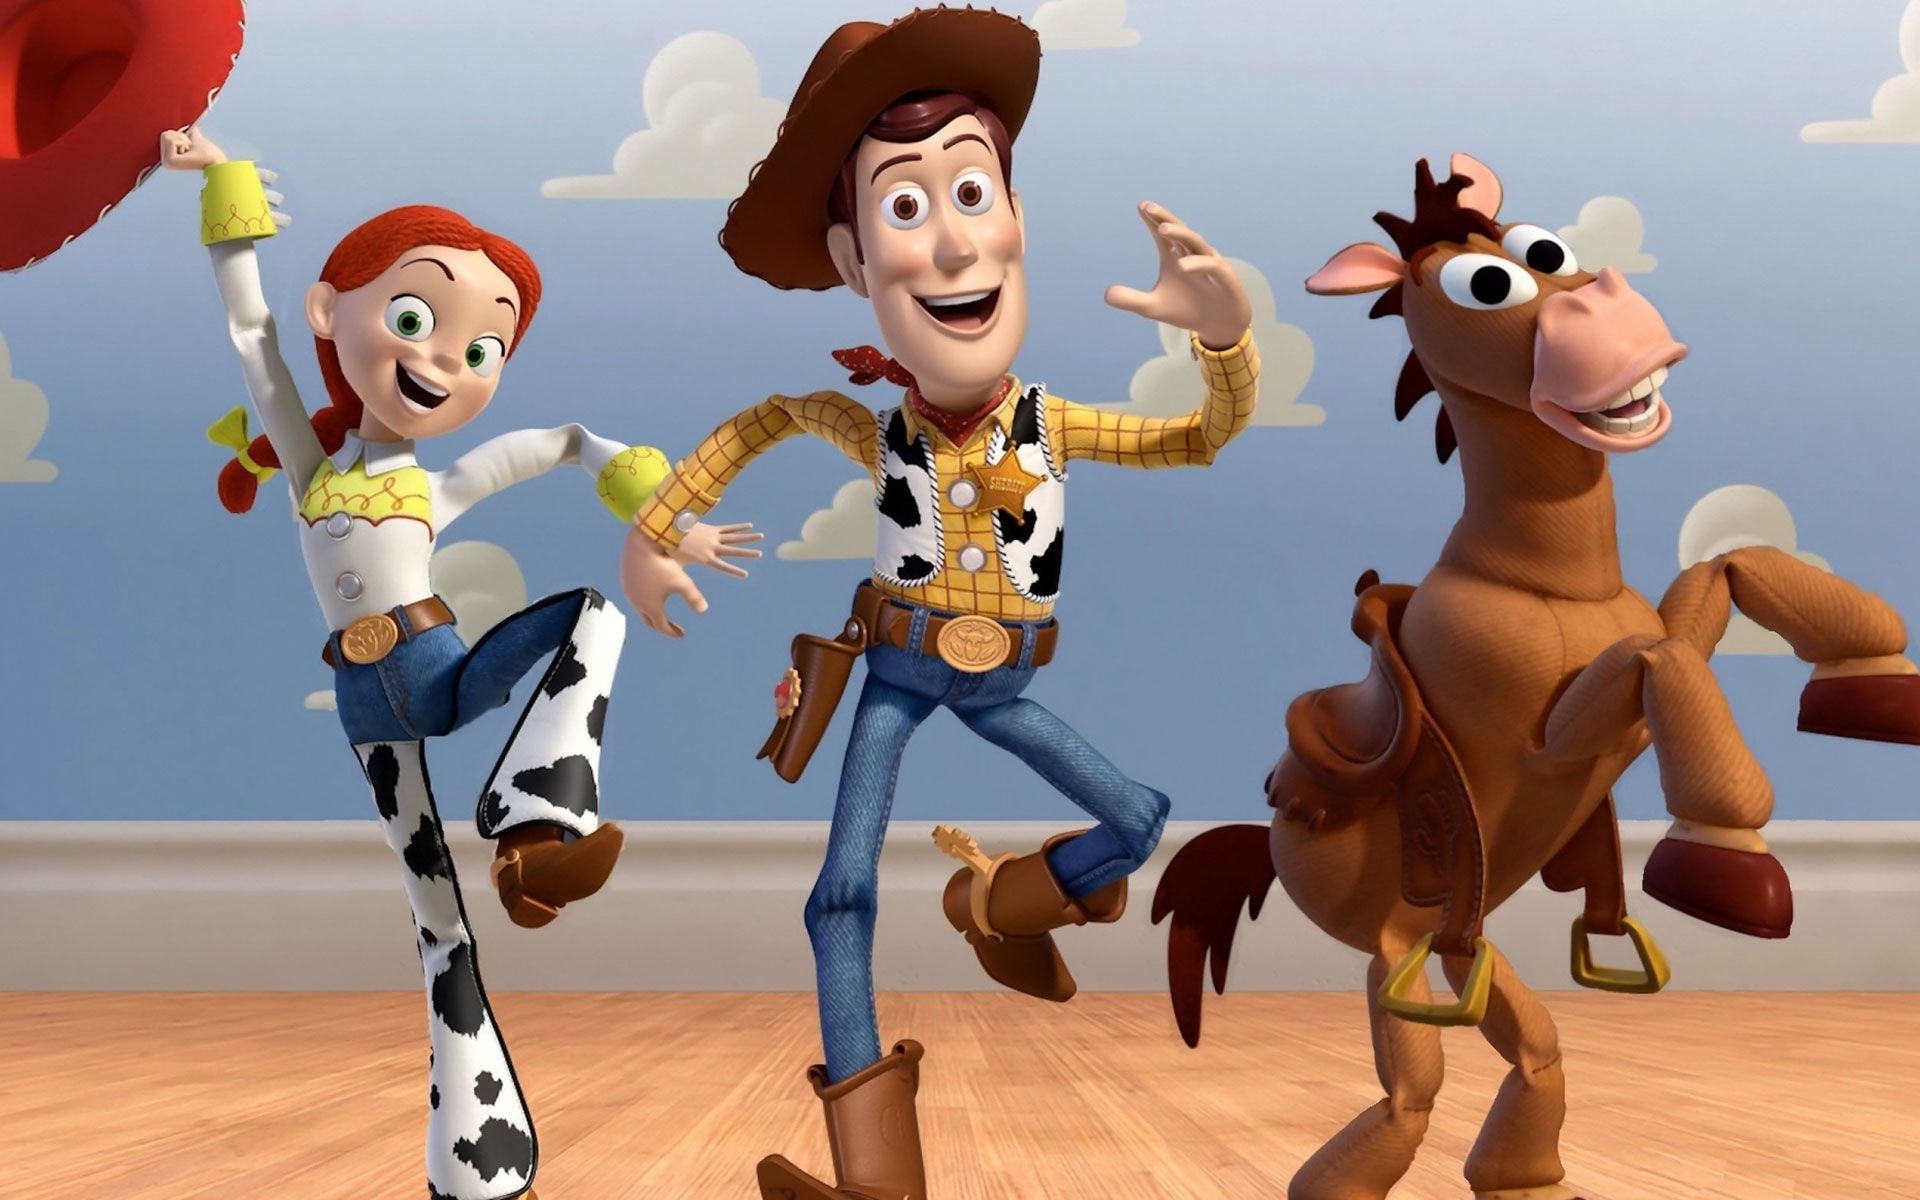 700+ Wallpaper Android Toy Story  Terbaru